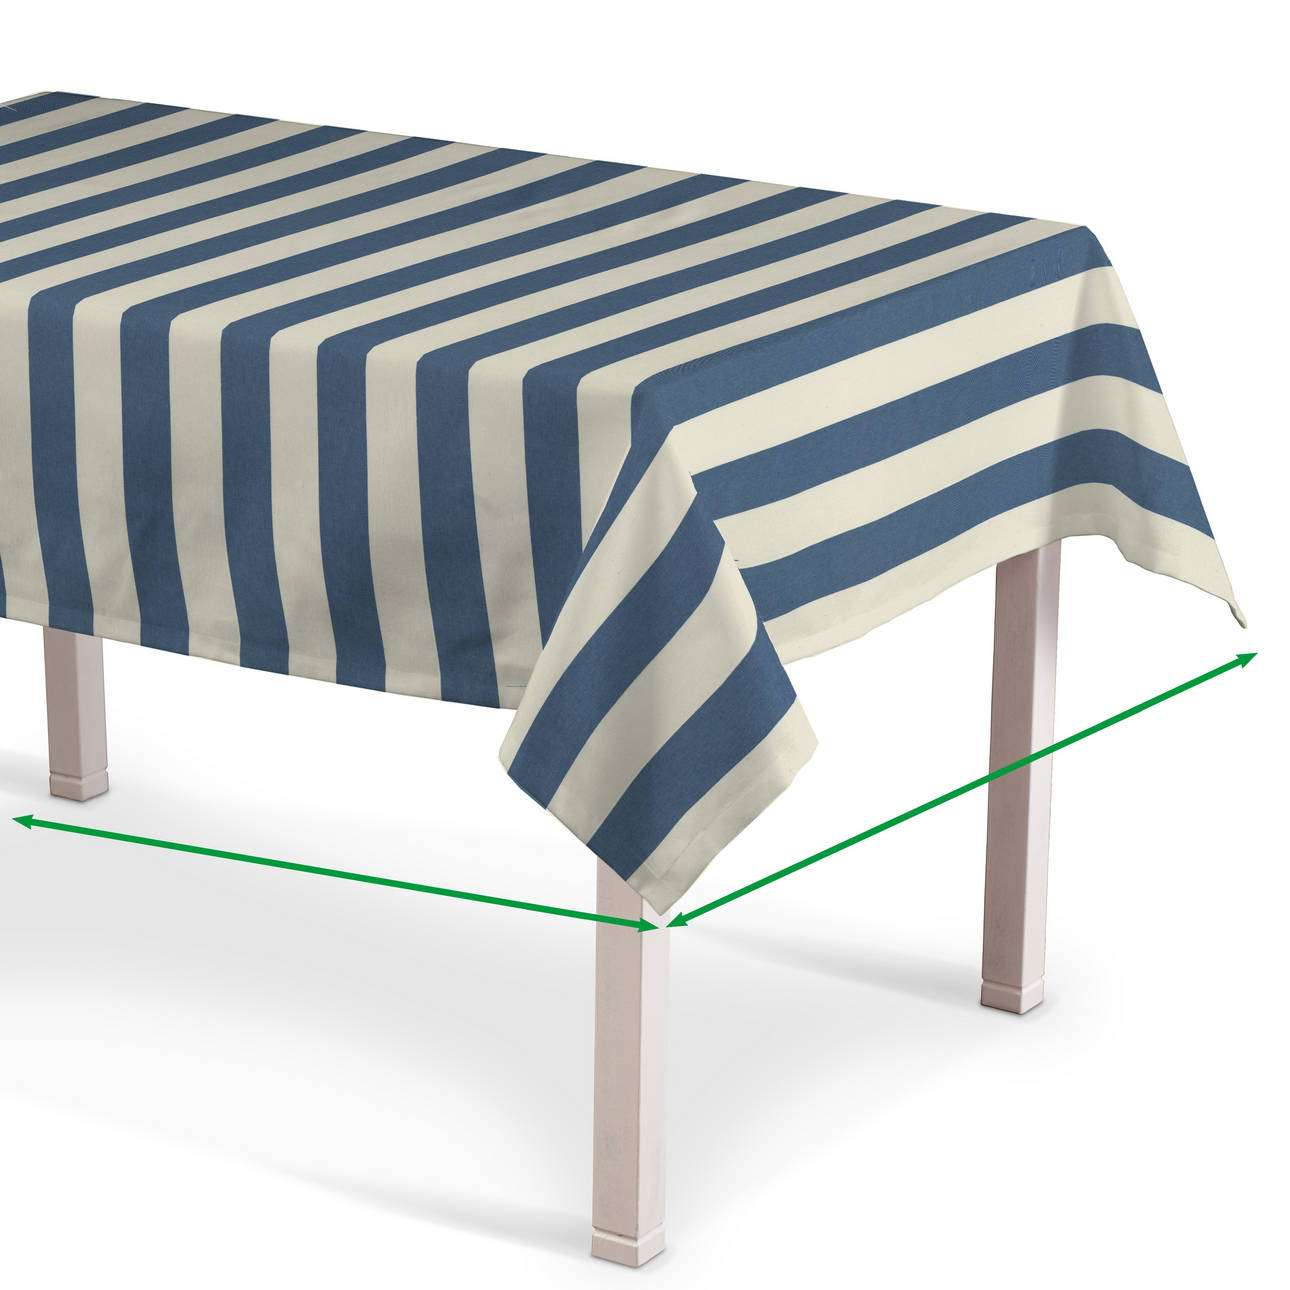 Rectangular tablecloth in collection Quadro, fabric: 142-70